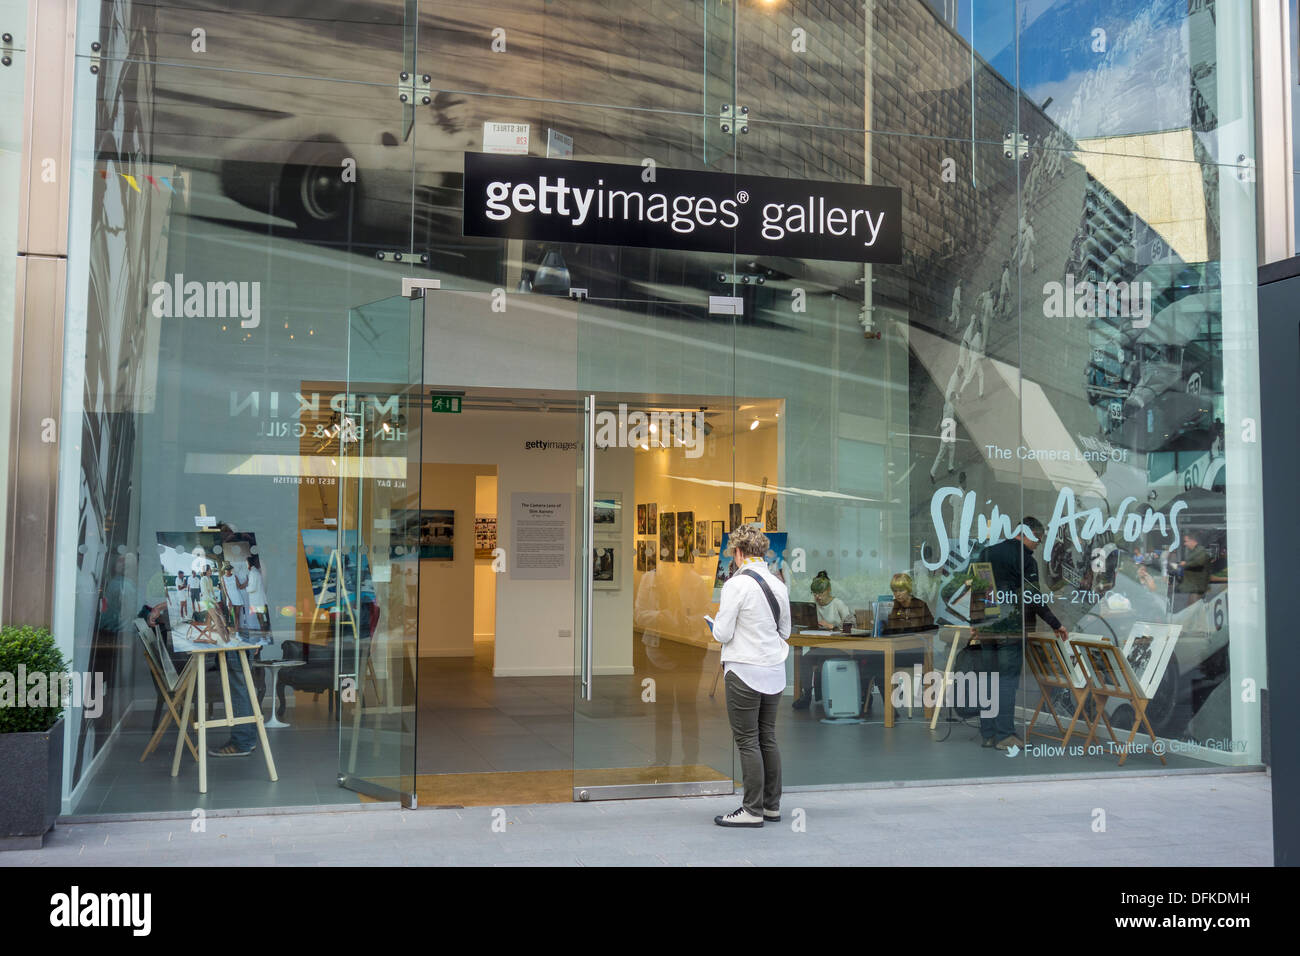 Getty Images Gallery Westfield Shopping Centre Stratford City Stock Photo